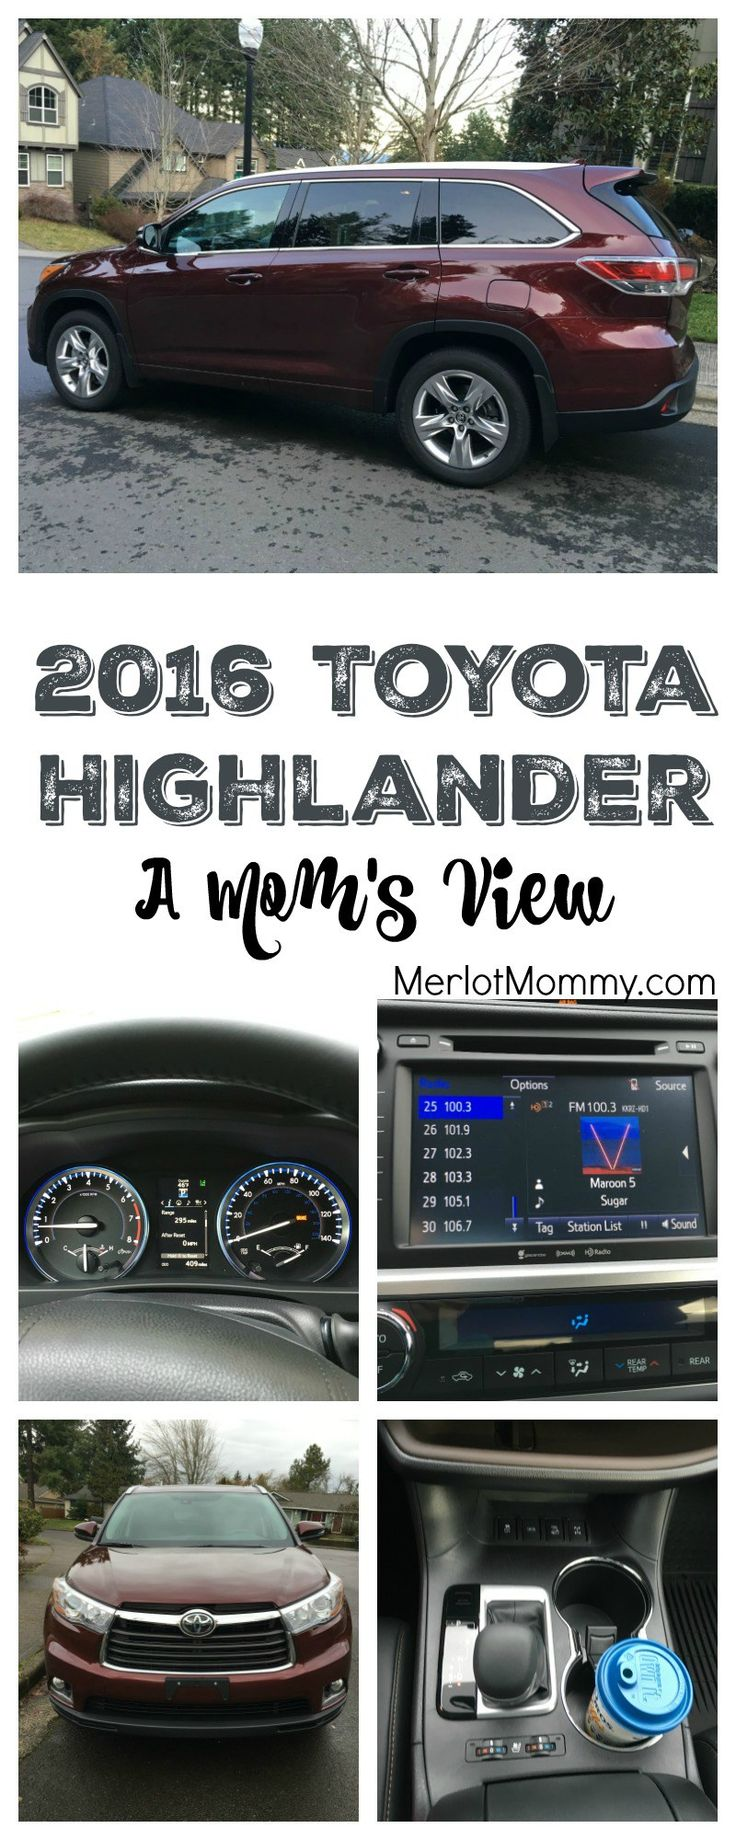 2016 Toyota Highlander: A Mom's View